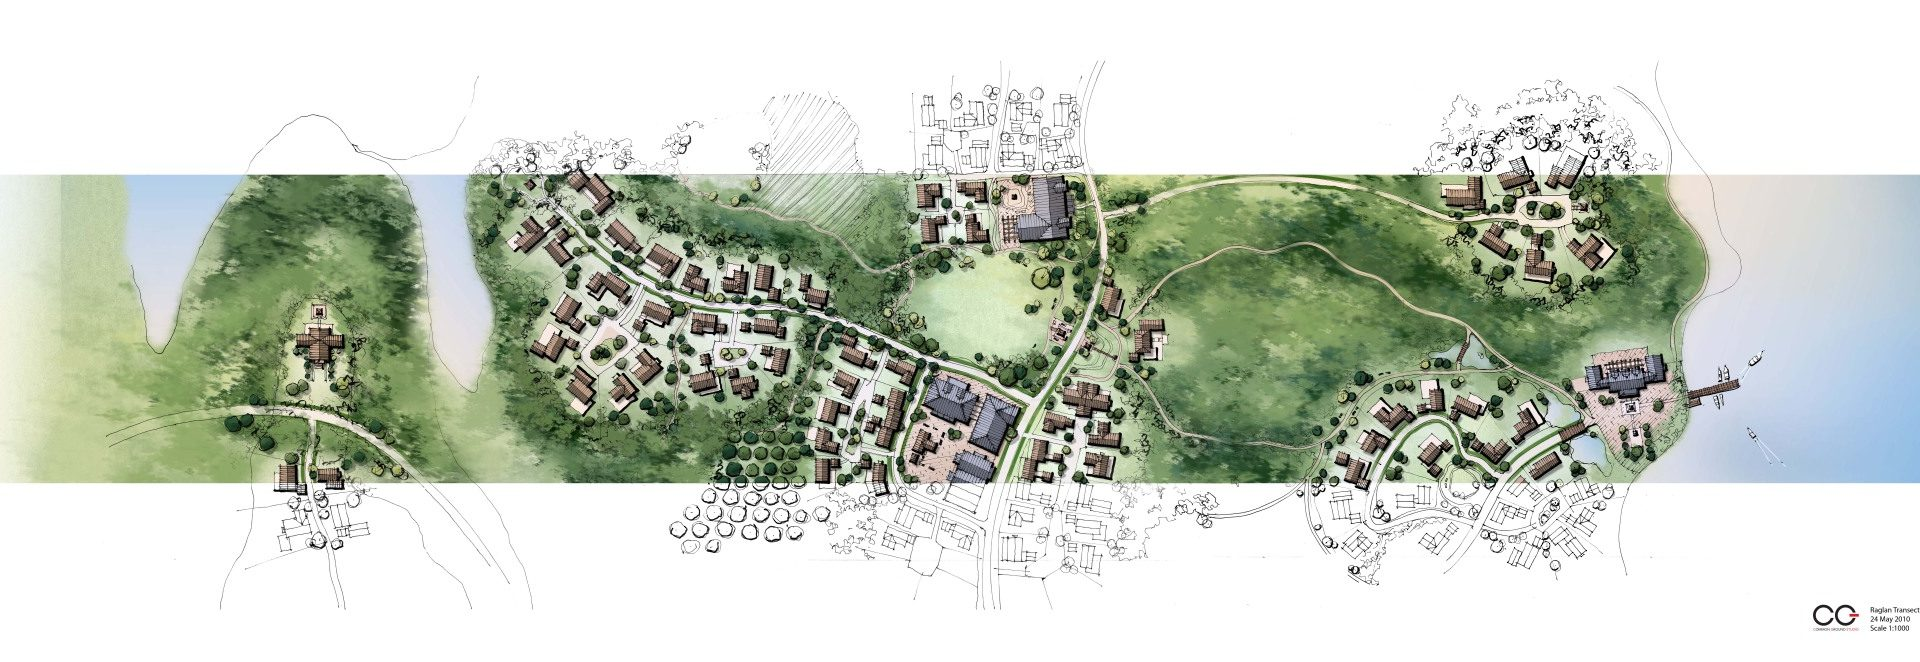 transect masterplan final 1000 2kp